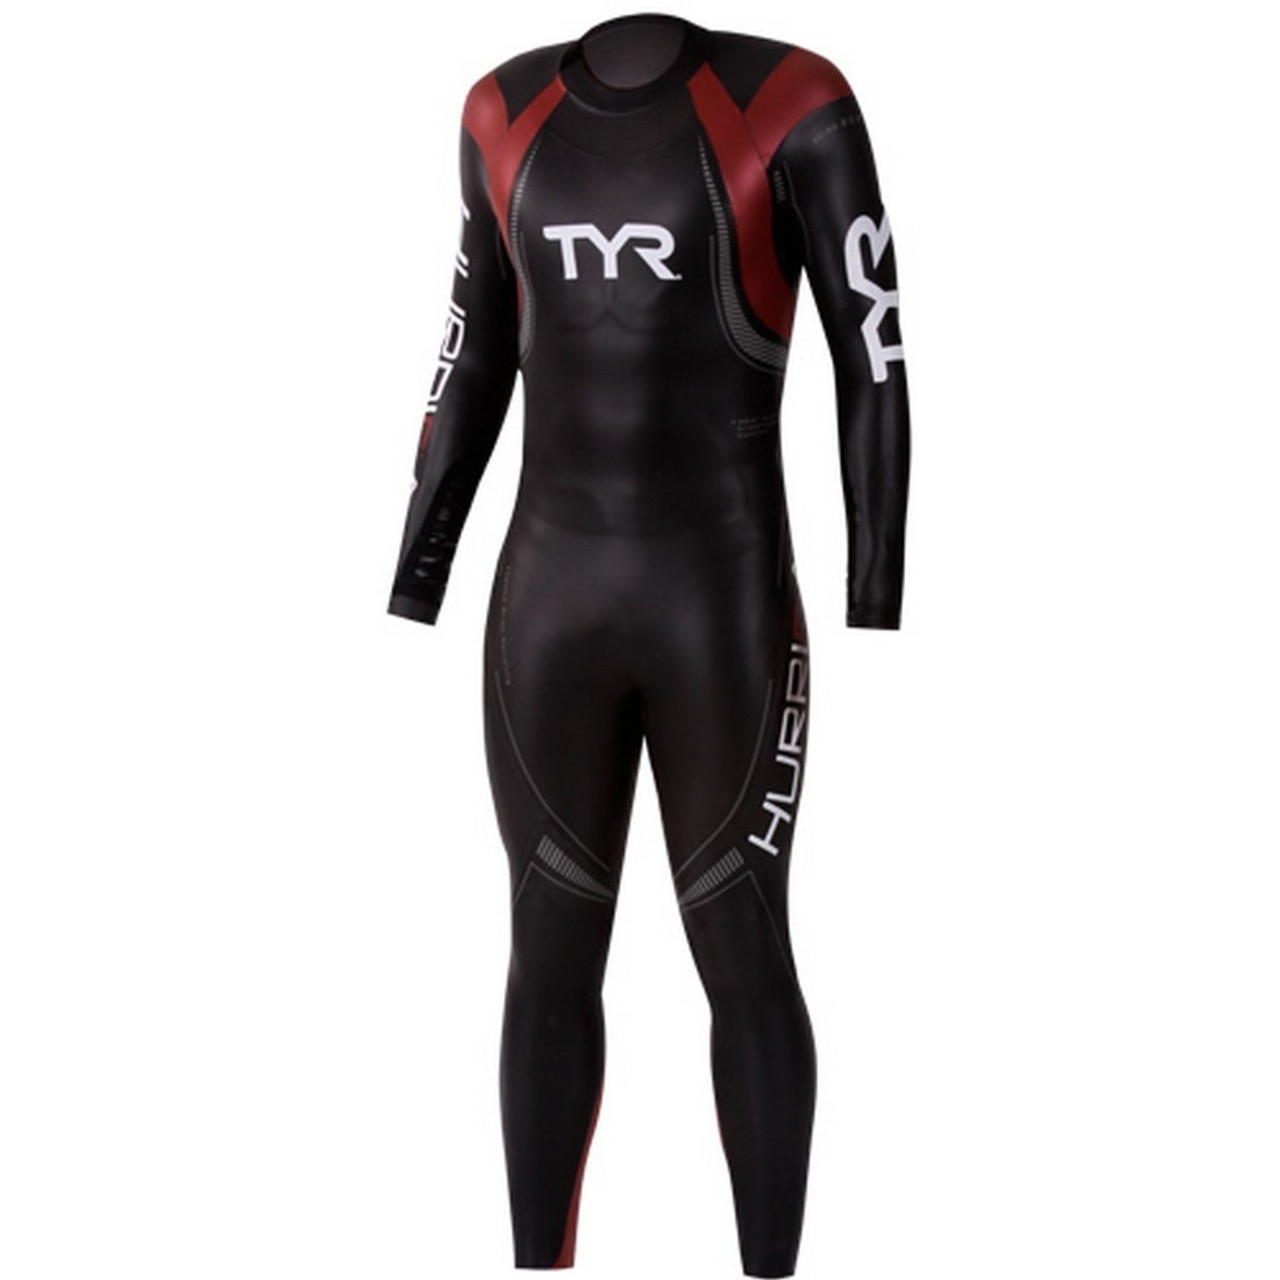 658244766fe5b REPAIRED  TYR Men s Hurricane Category 5 Wetsuit - Size XL - Triathlete  Sports